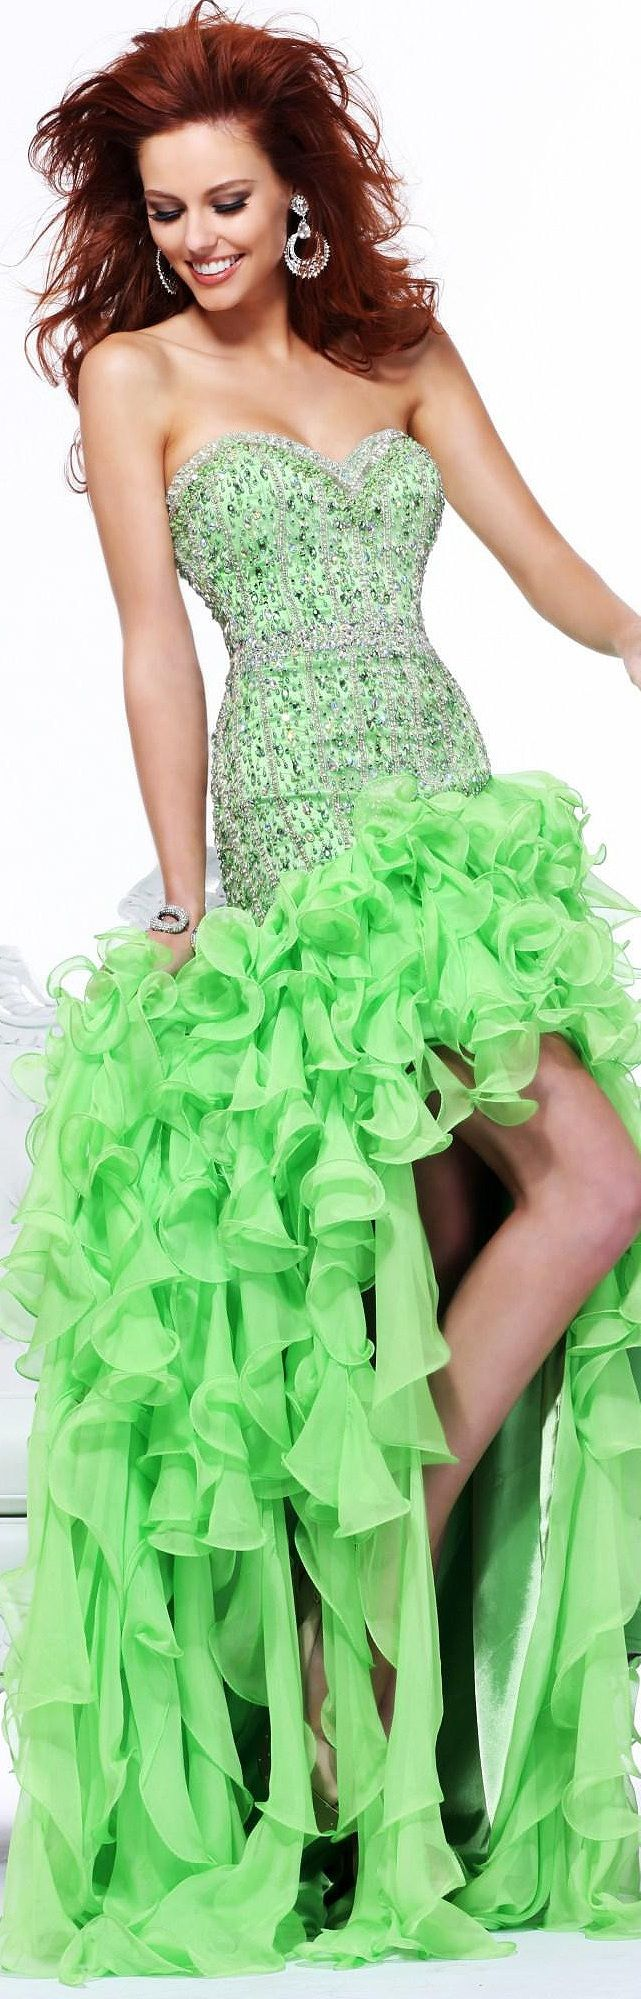 best prom images on pinterest prom flowers homecoming flowers